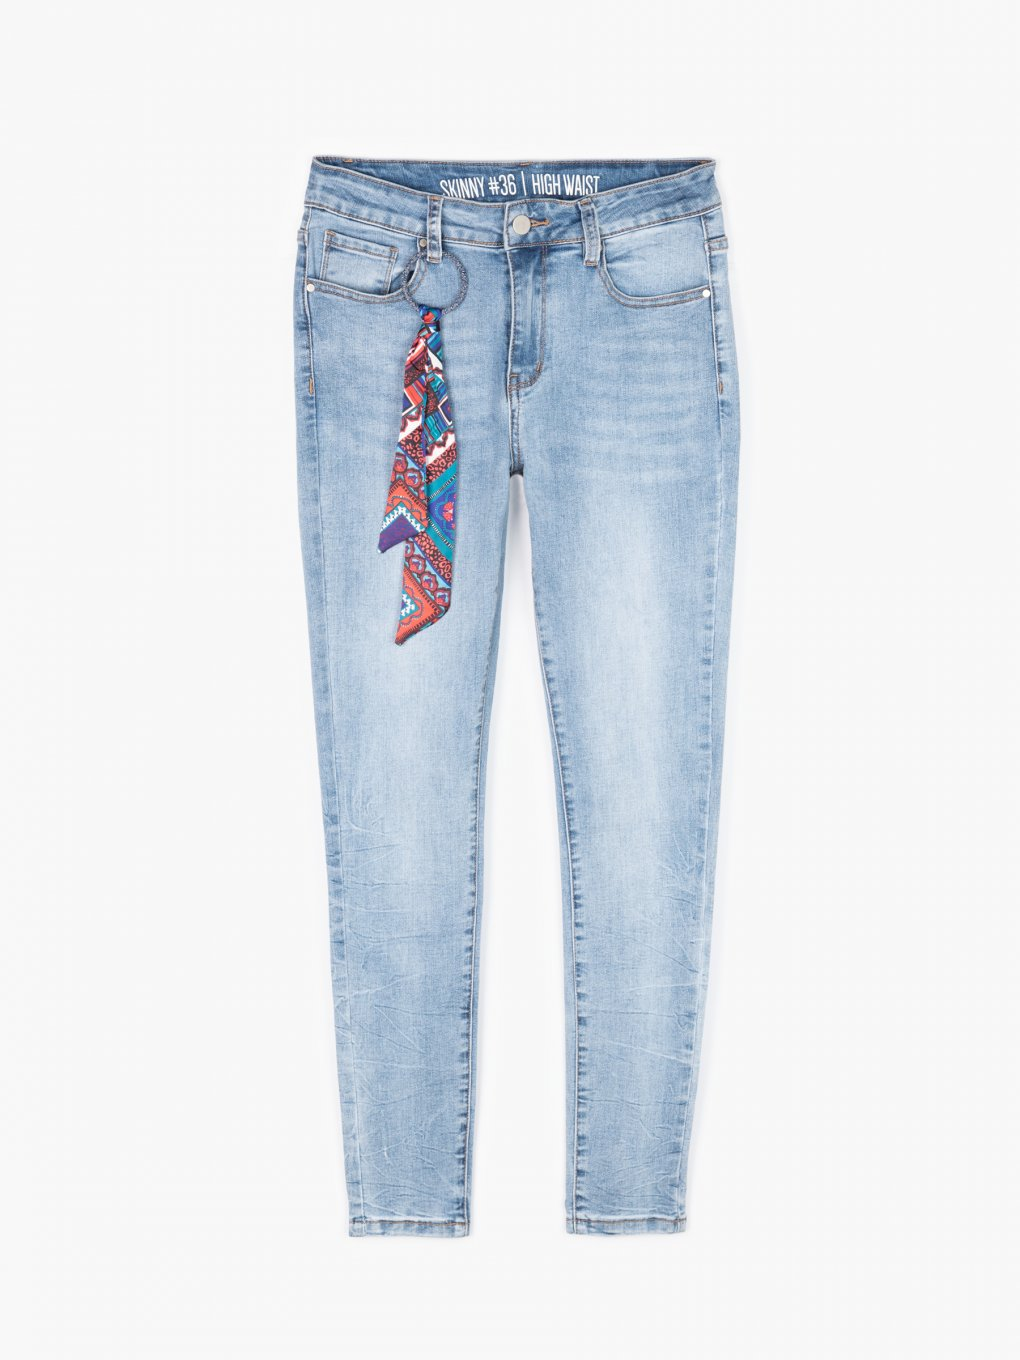 Skinny jeans with a decoration